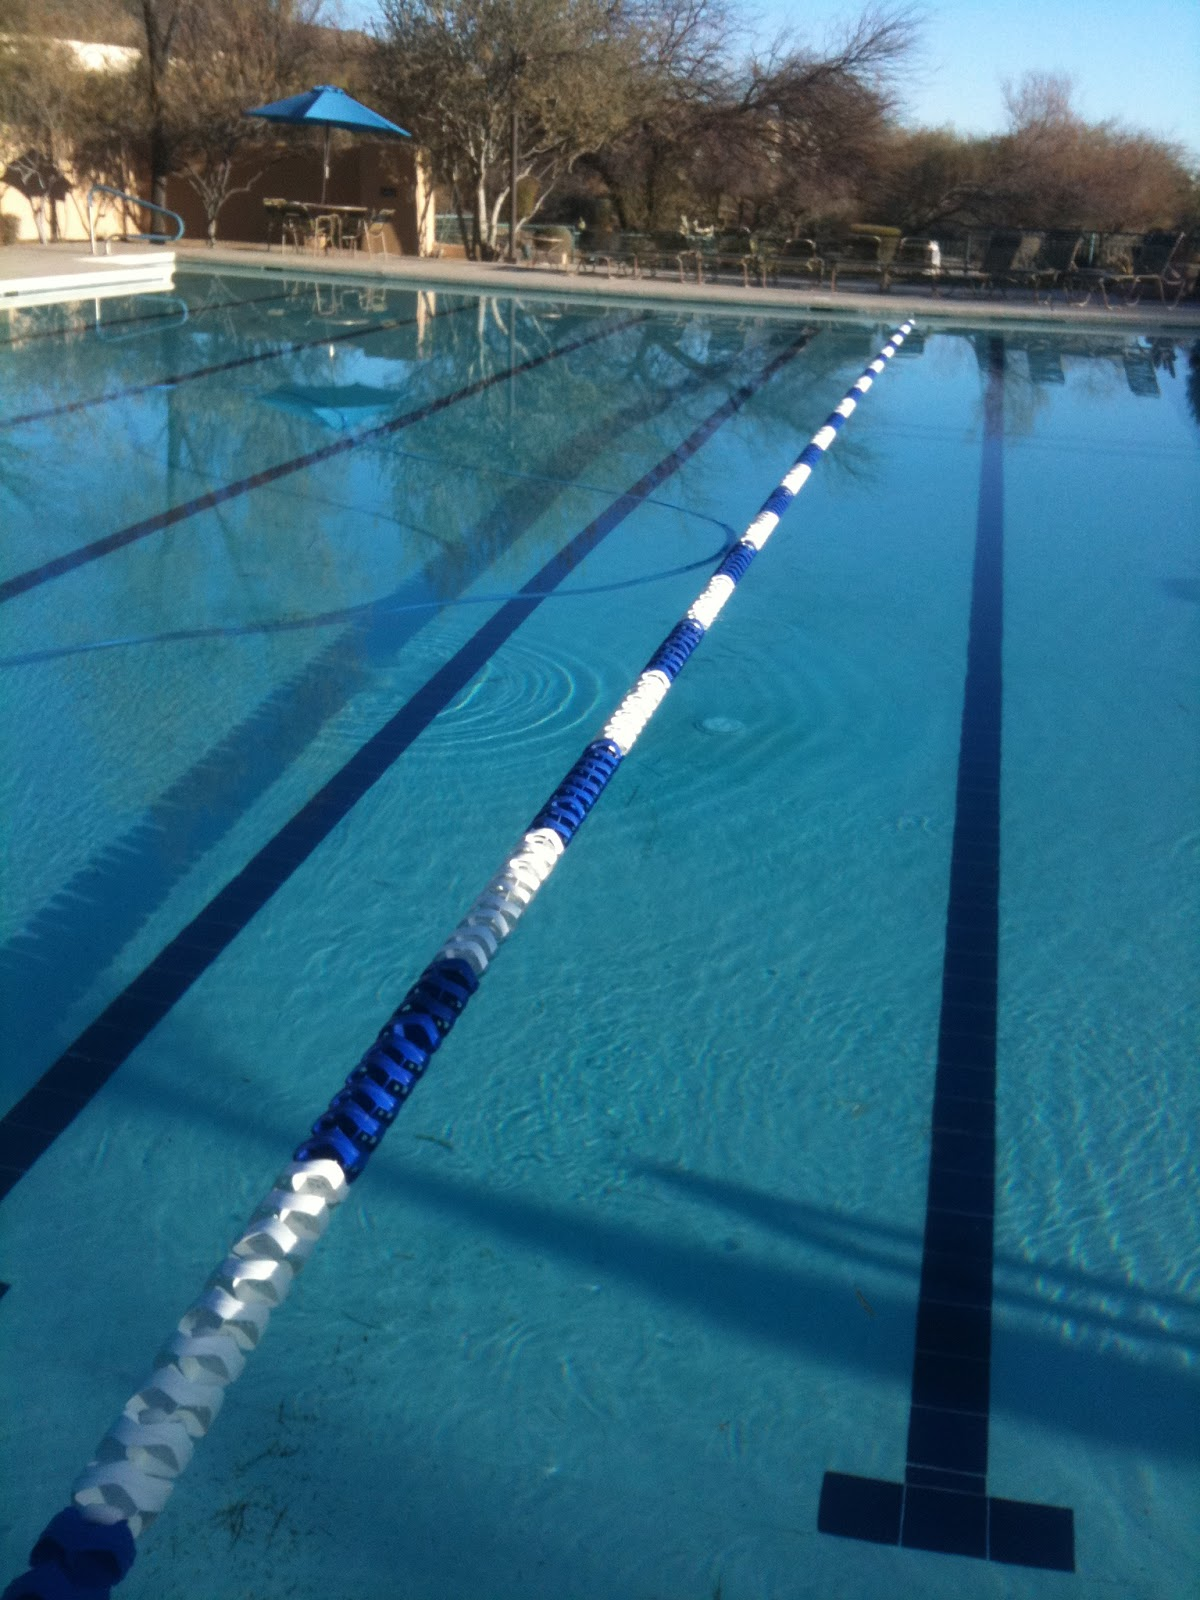 swimming pool lane lines background. The One Lane-line Pool Swimming Lane Lines Background S